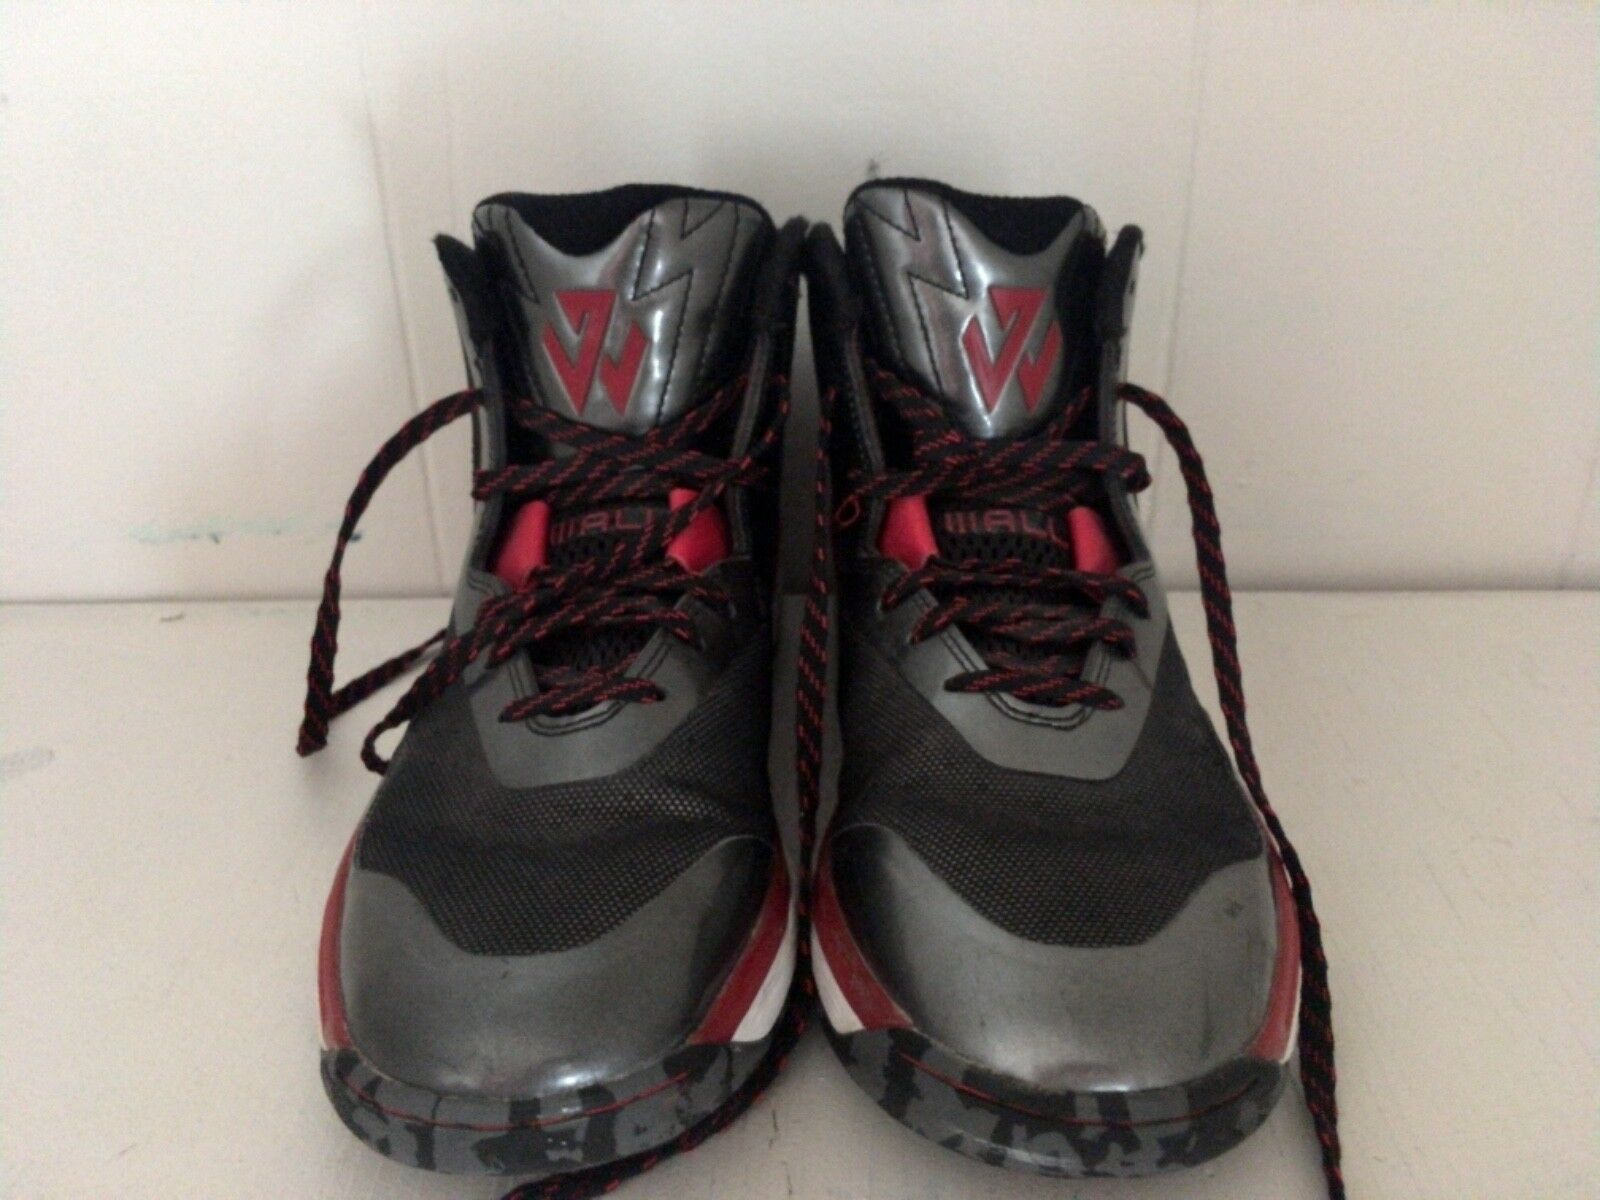 Men's Adidas basketball shoes , John Wall, size 8, black, red and white